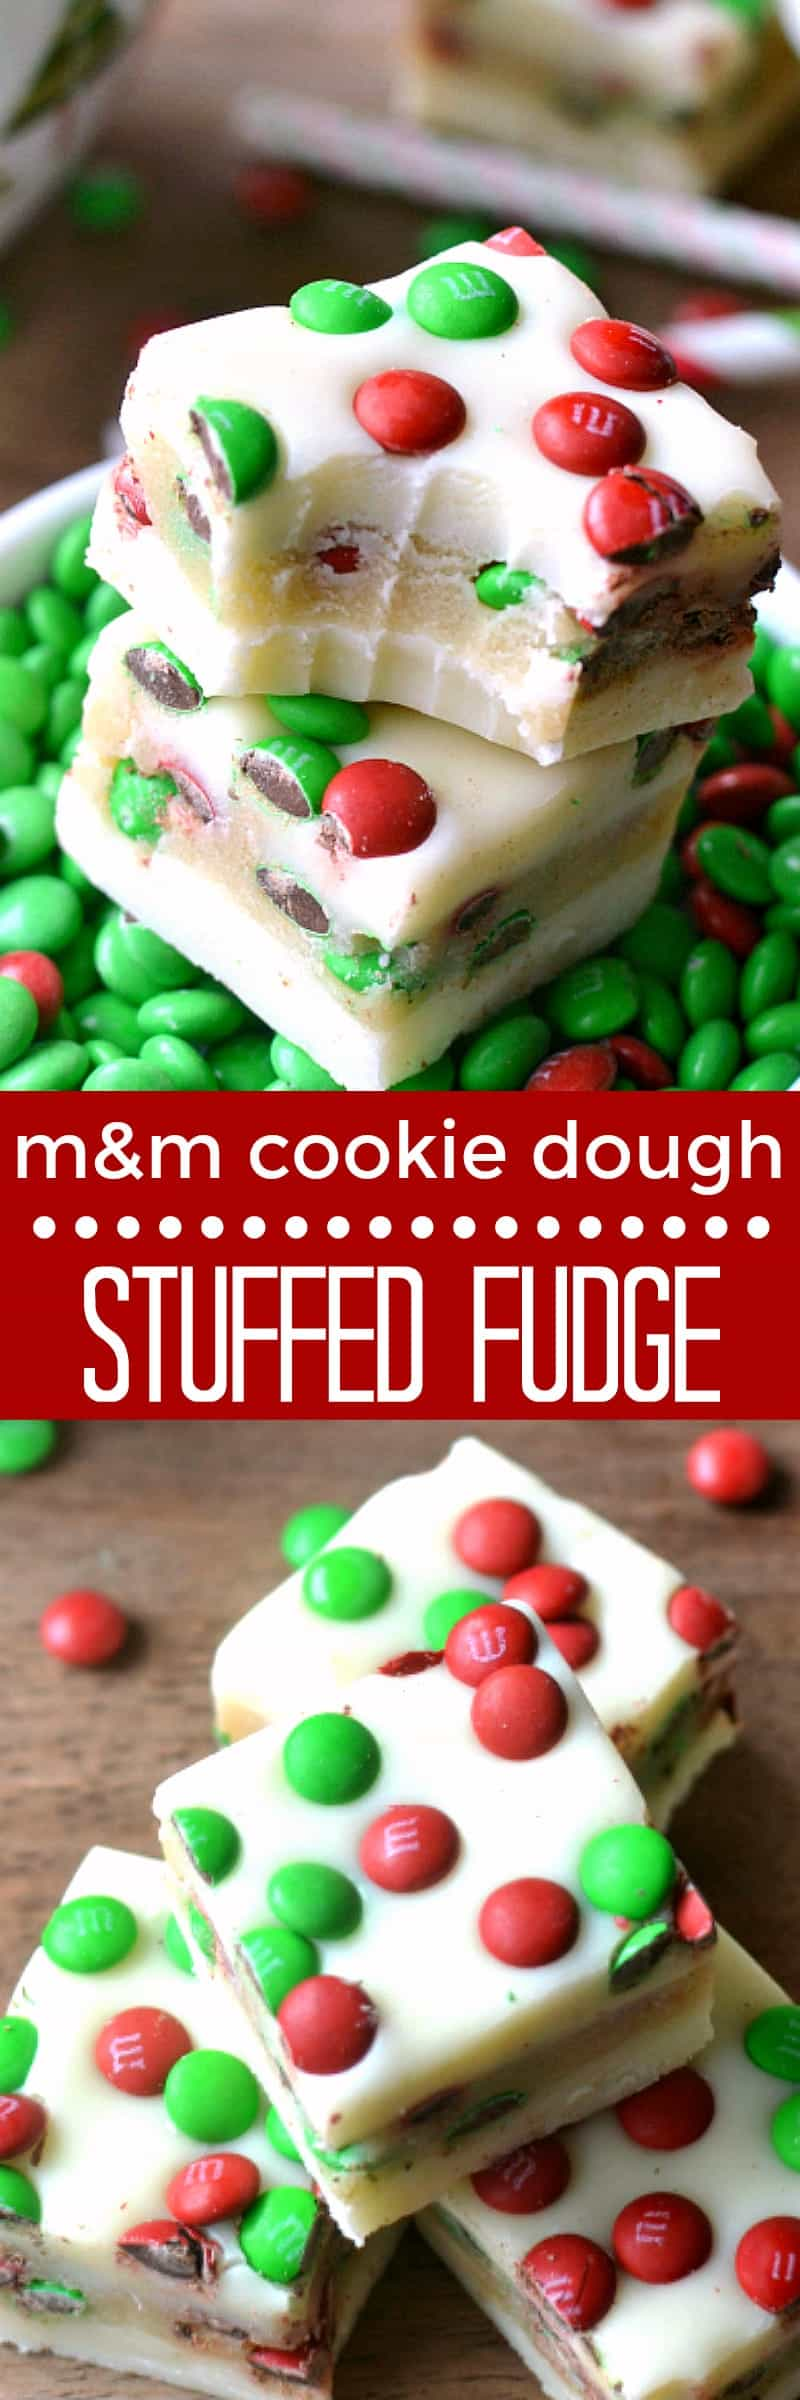 M&M Cookie Dough Stuffed Fudge is an easy, delicious recipe thats perfect for the holidays. This 5 minute fudge is made with white chocolate stuffed with an M&M cookie dough and topped with more M&M's! A crowd pleaser and a great gift!